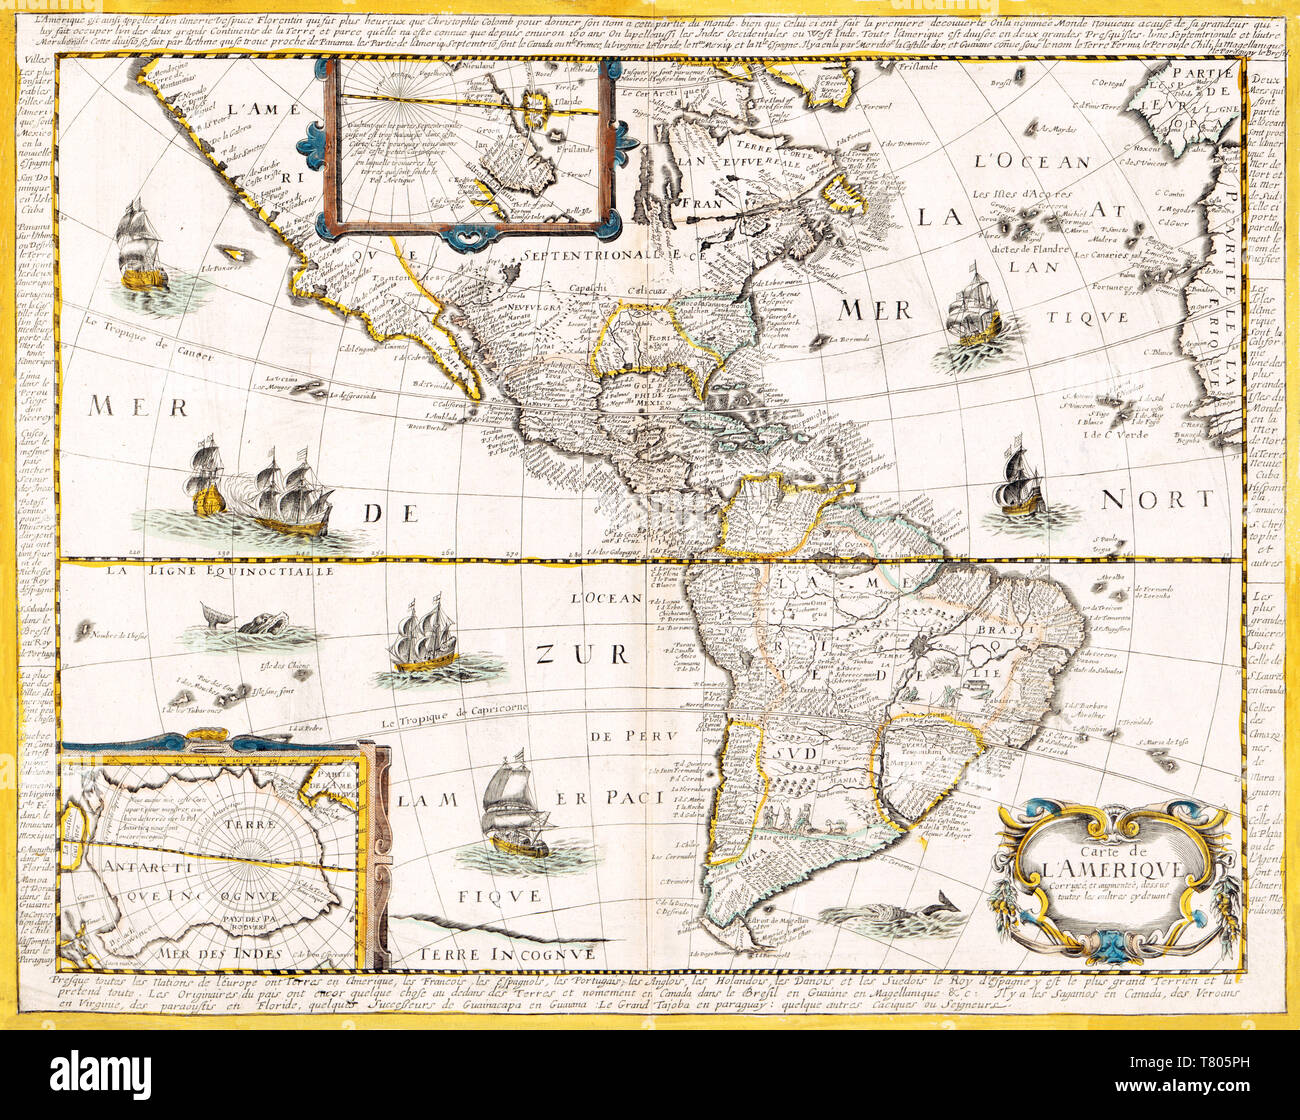 Nicolas Berey, The Americas Map, 1661 Stock Photo